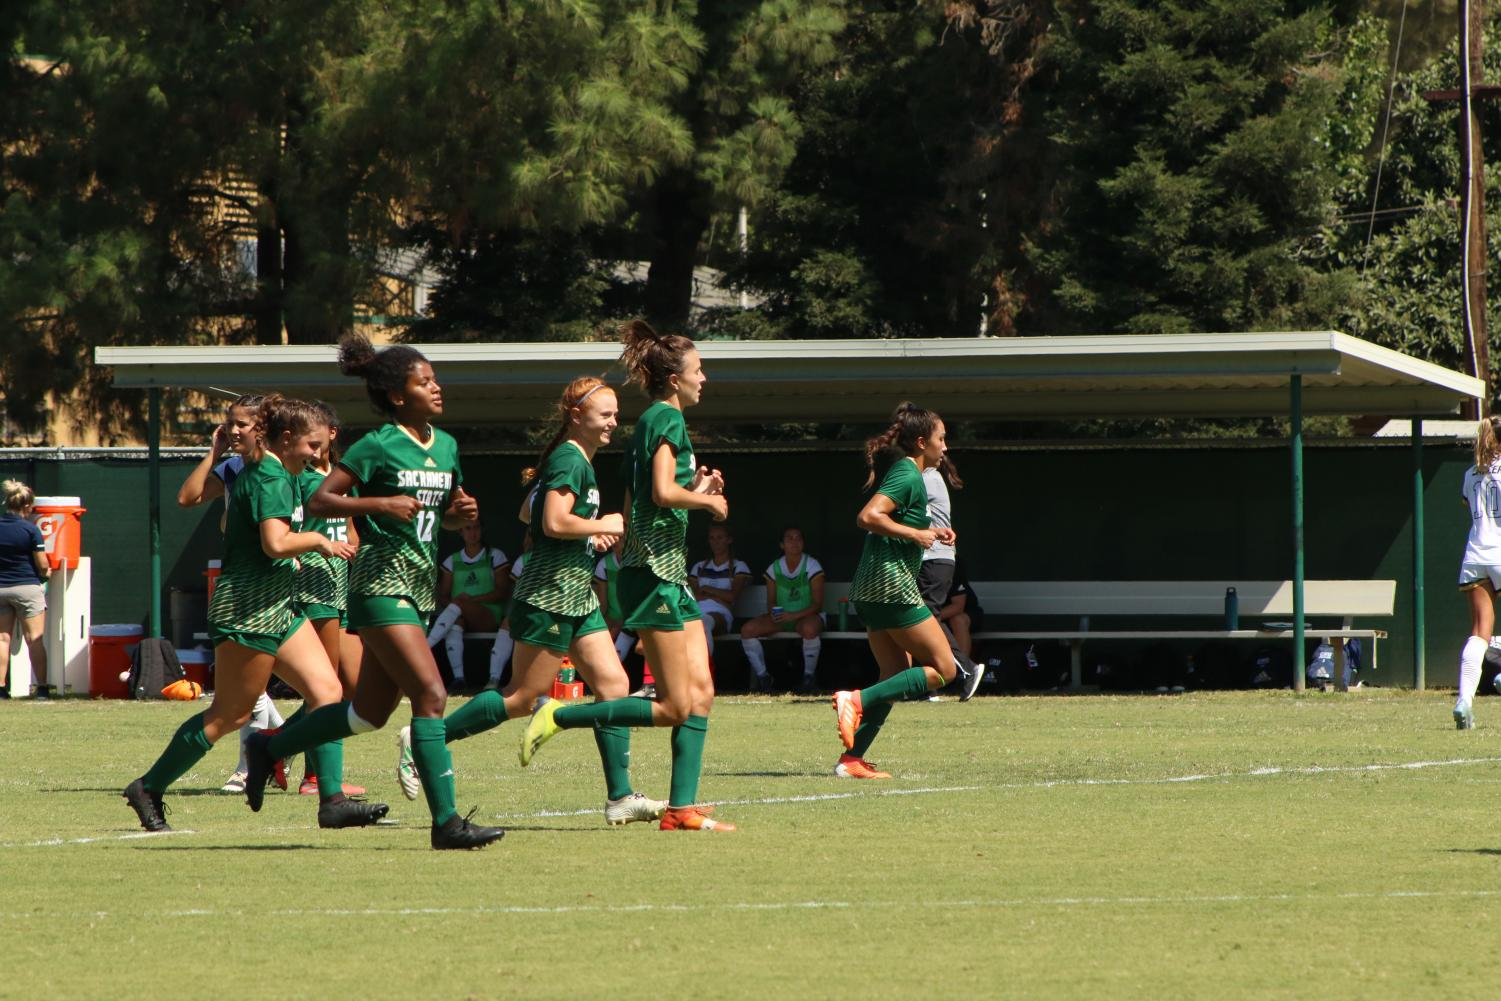 Members+of+the+Sac+State+women%27s+soccer+team+jog+up+the+field+against+Cal+Baptist+on+Sunday%2C+Sept.+8+at+Hornet+Field.+The+Hornets+and+Lancers+played+a+2-2+draw.